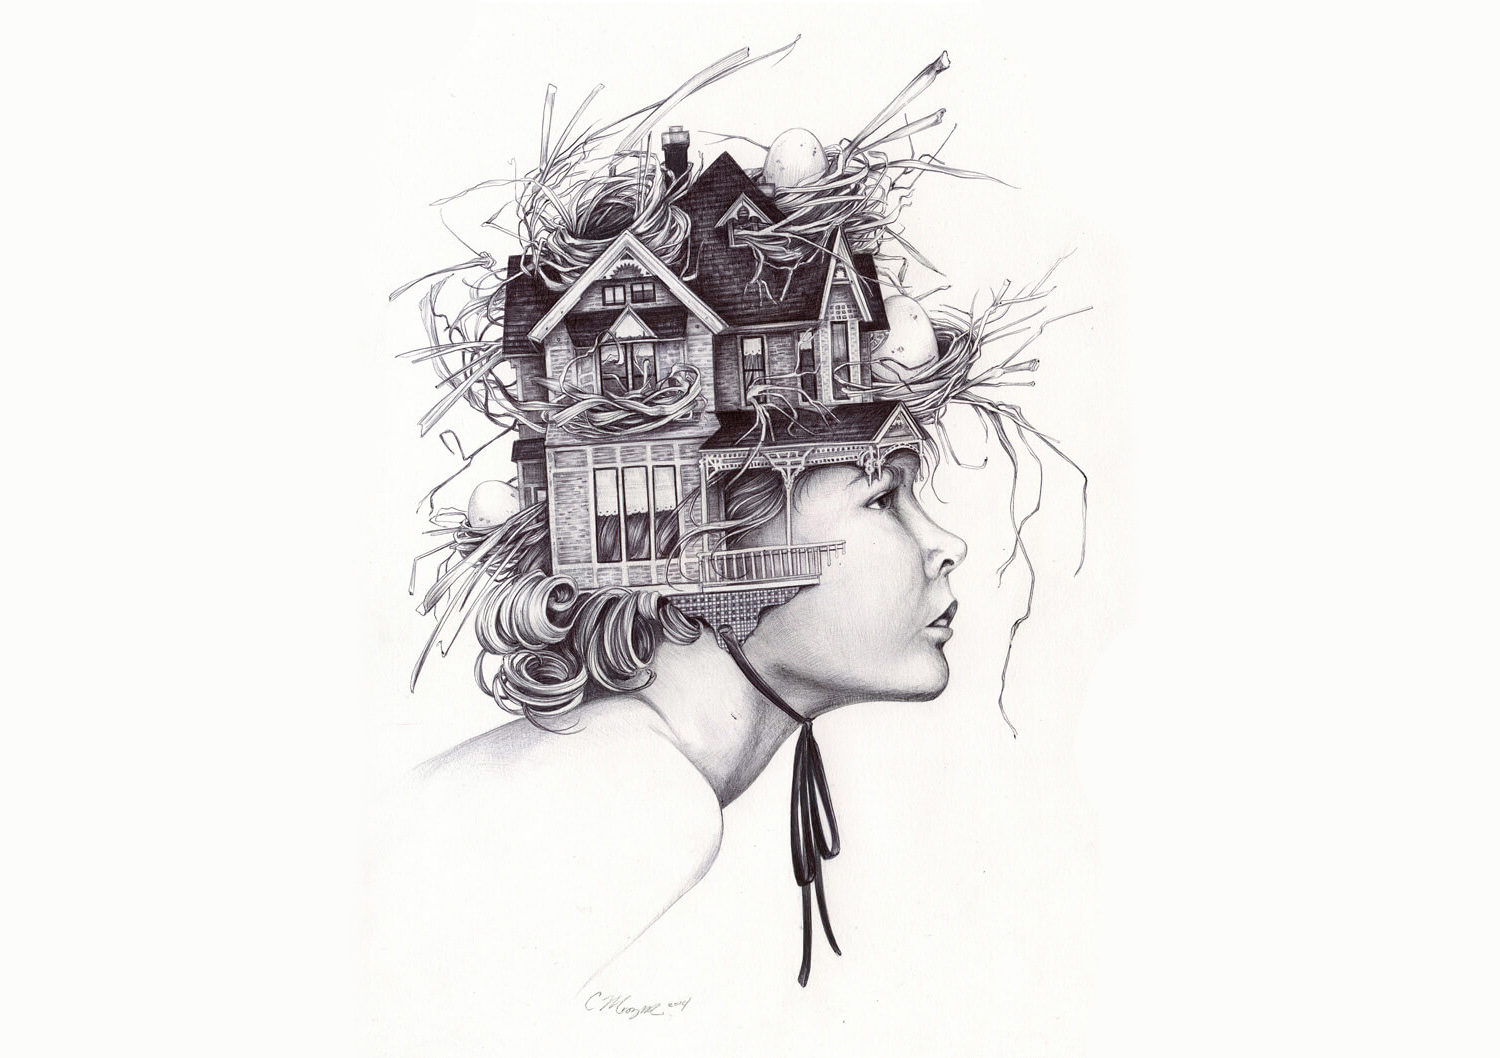 surreal portrait with a girl as a house by christina mrozik